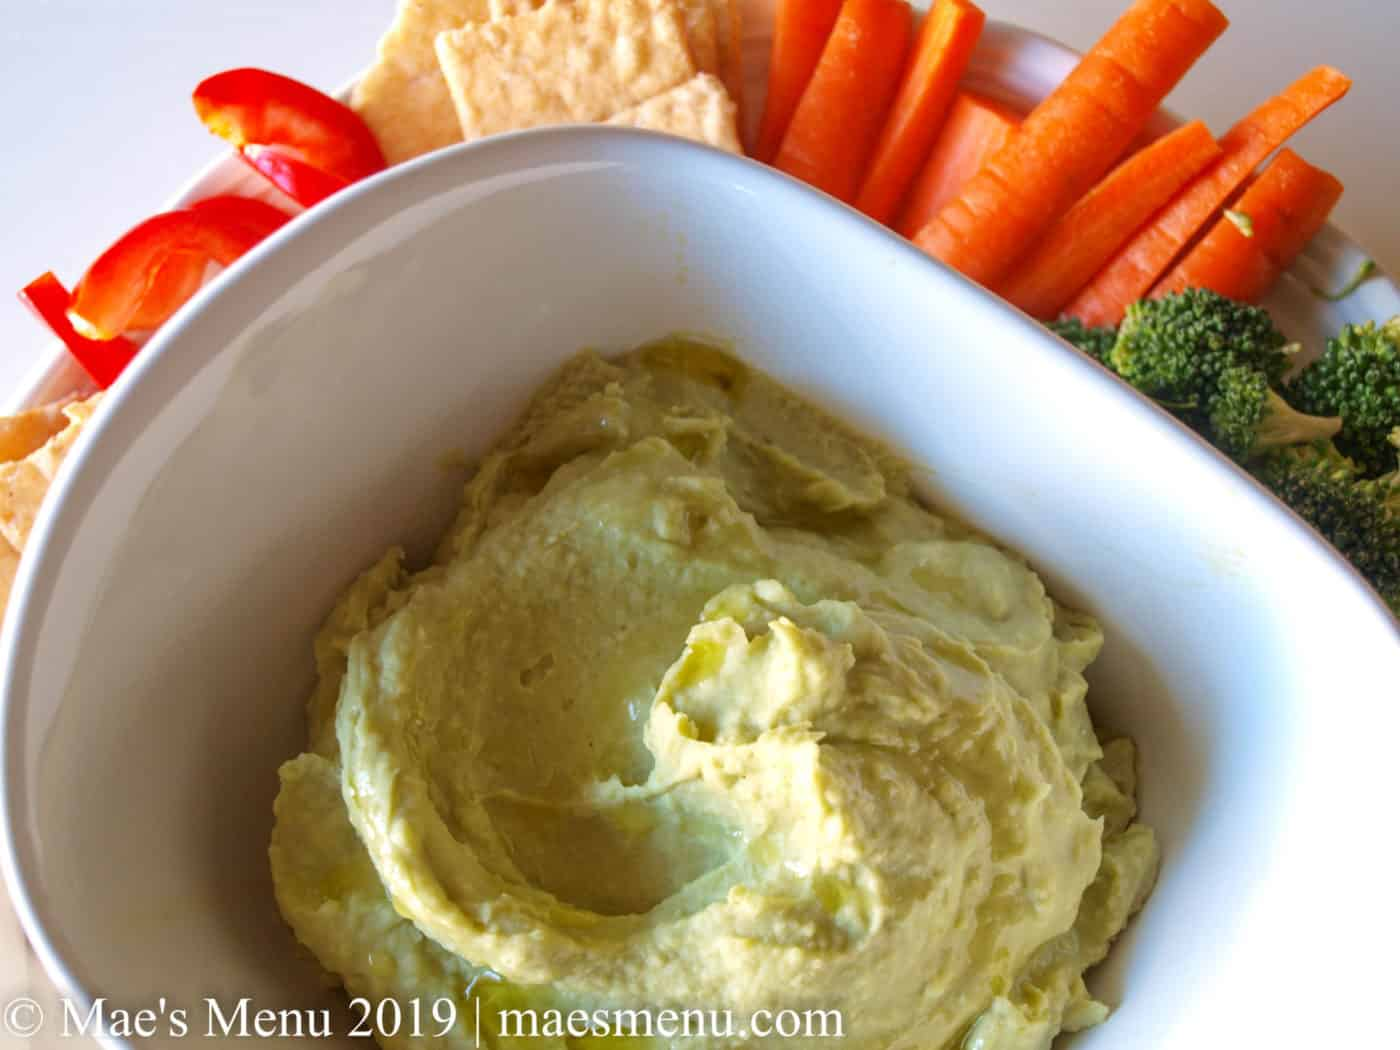 White bowl of split pea hummus surrounded by chopped veggies on a white table.